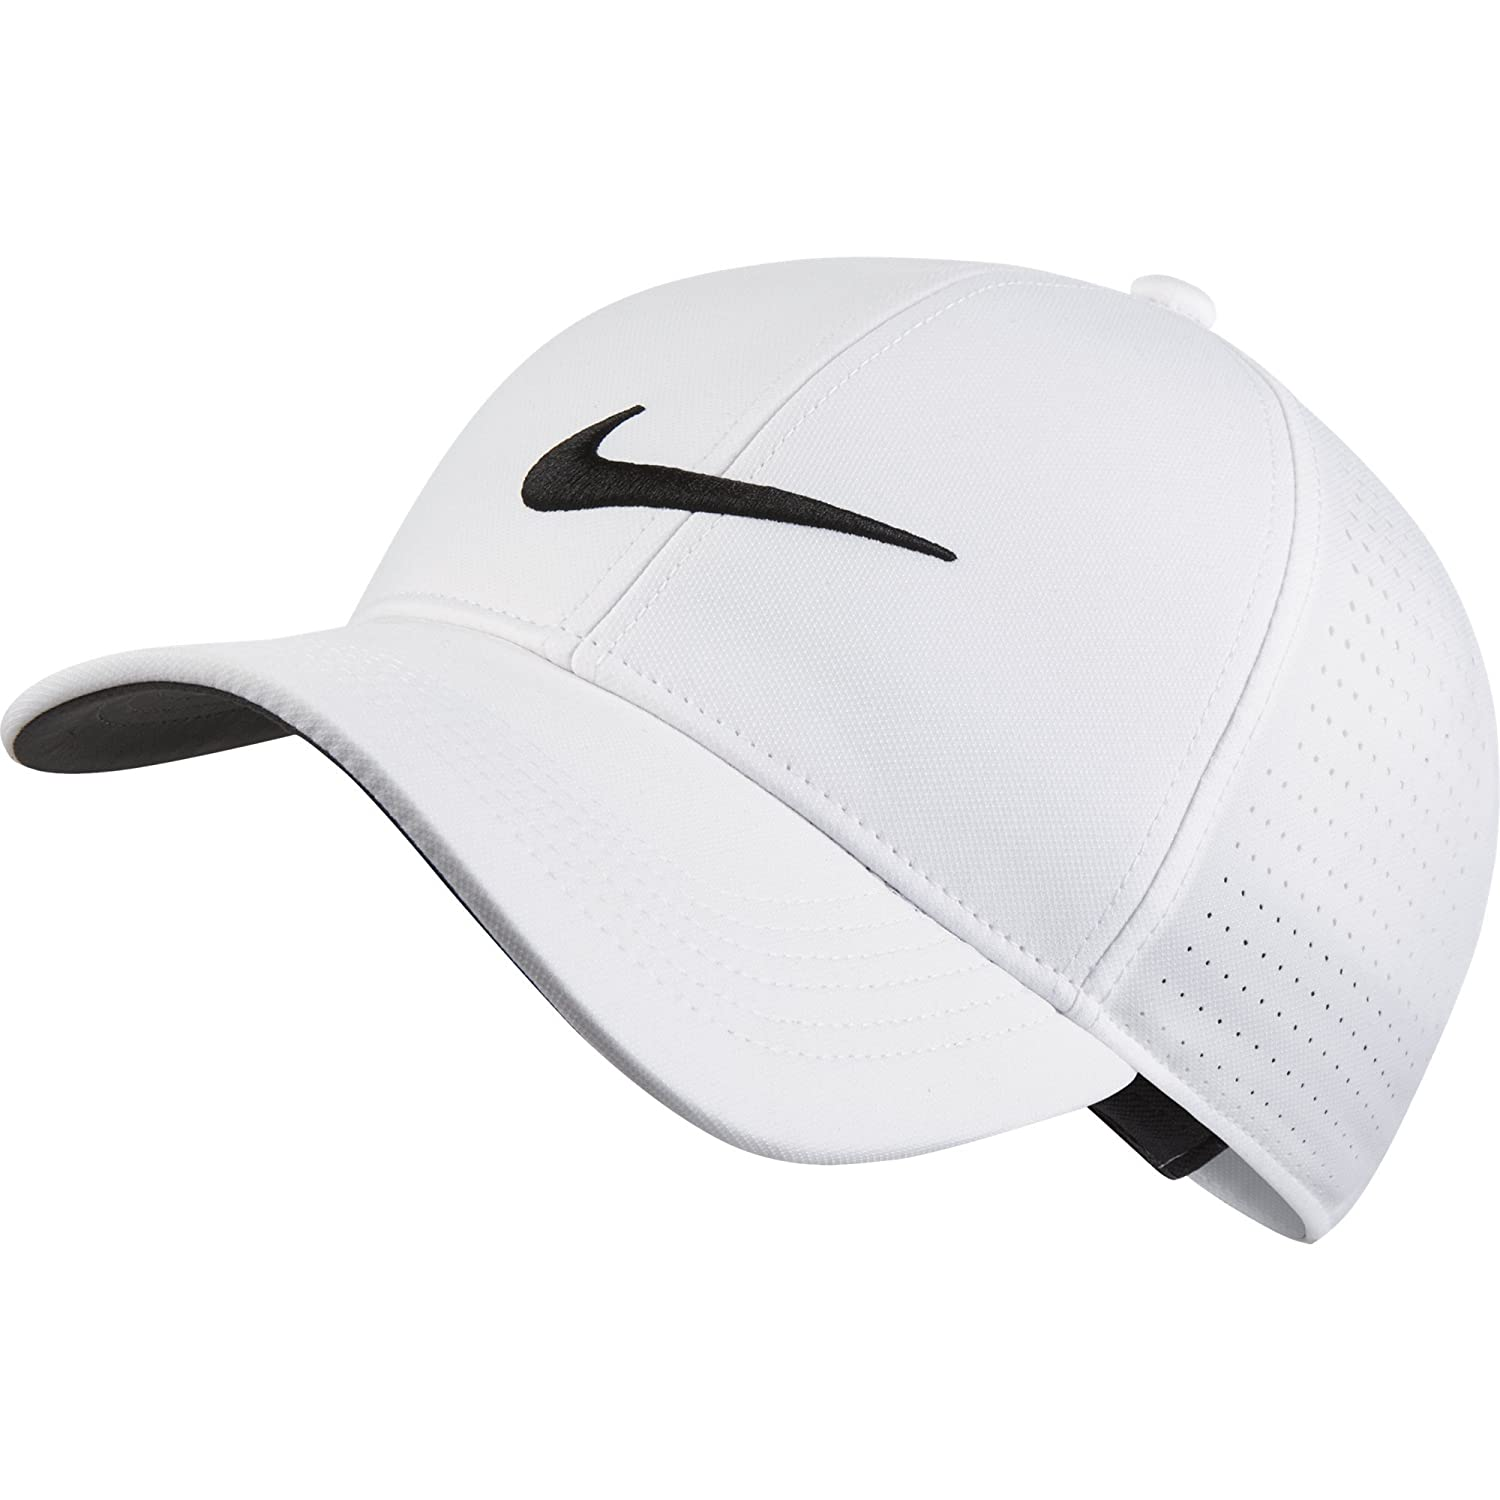 34e38de4553 Nike Legacy 91 Perforated Hat - White Anthracite Black